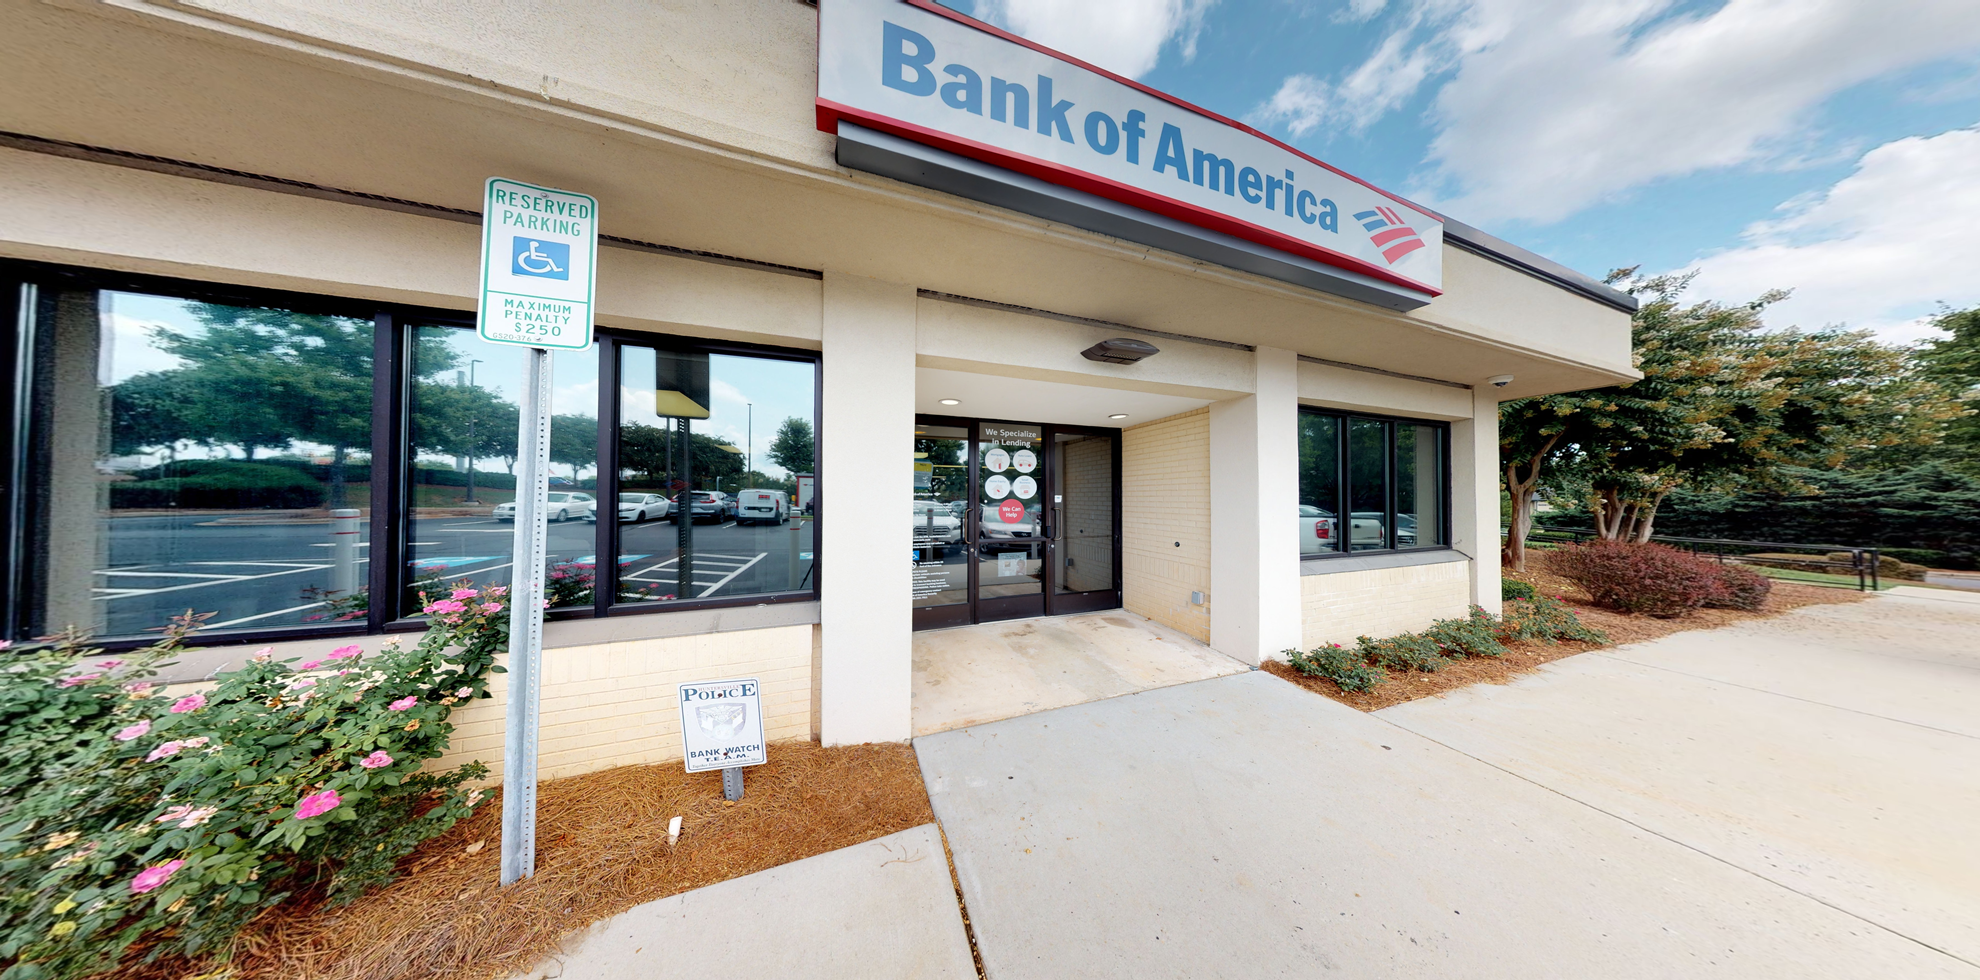 Bank of America financial center with drive-thru ATM and teller   9611 Holly Point Dr, Huntersville, NC 28078